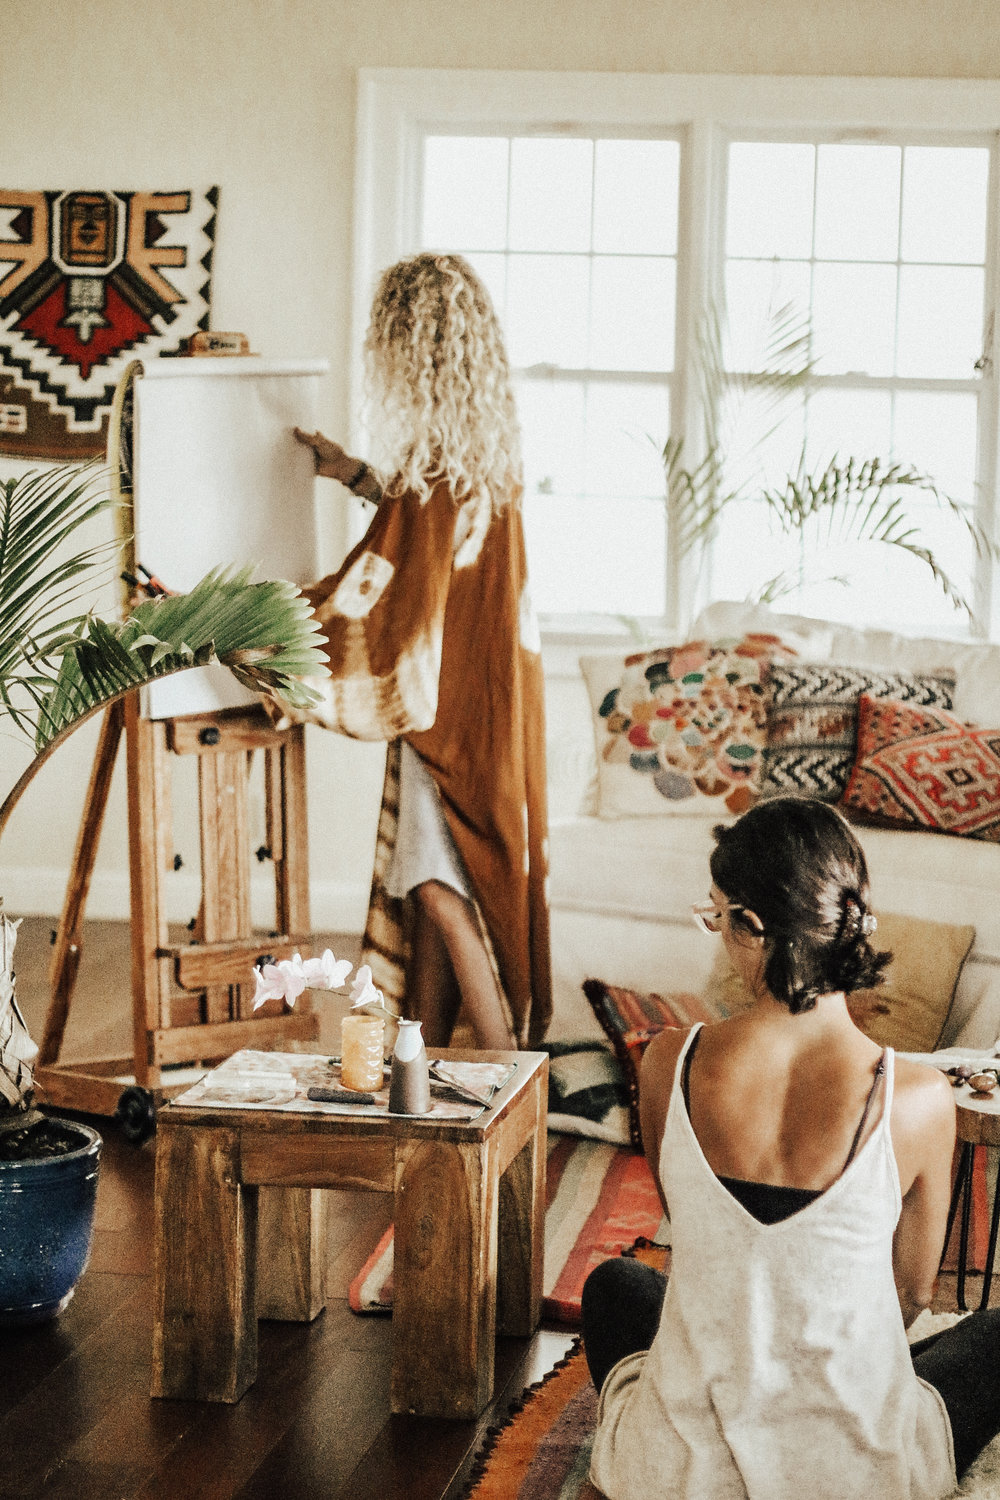 WOMEn HEALINg WOMEN - IT'S A PLACE TO FIND YOUR TRUTH